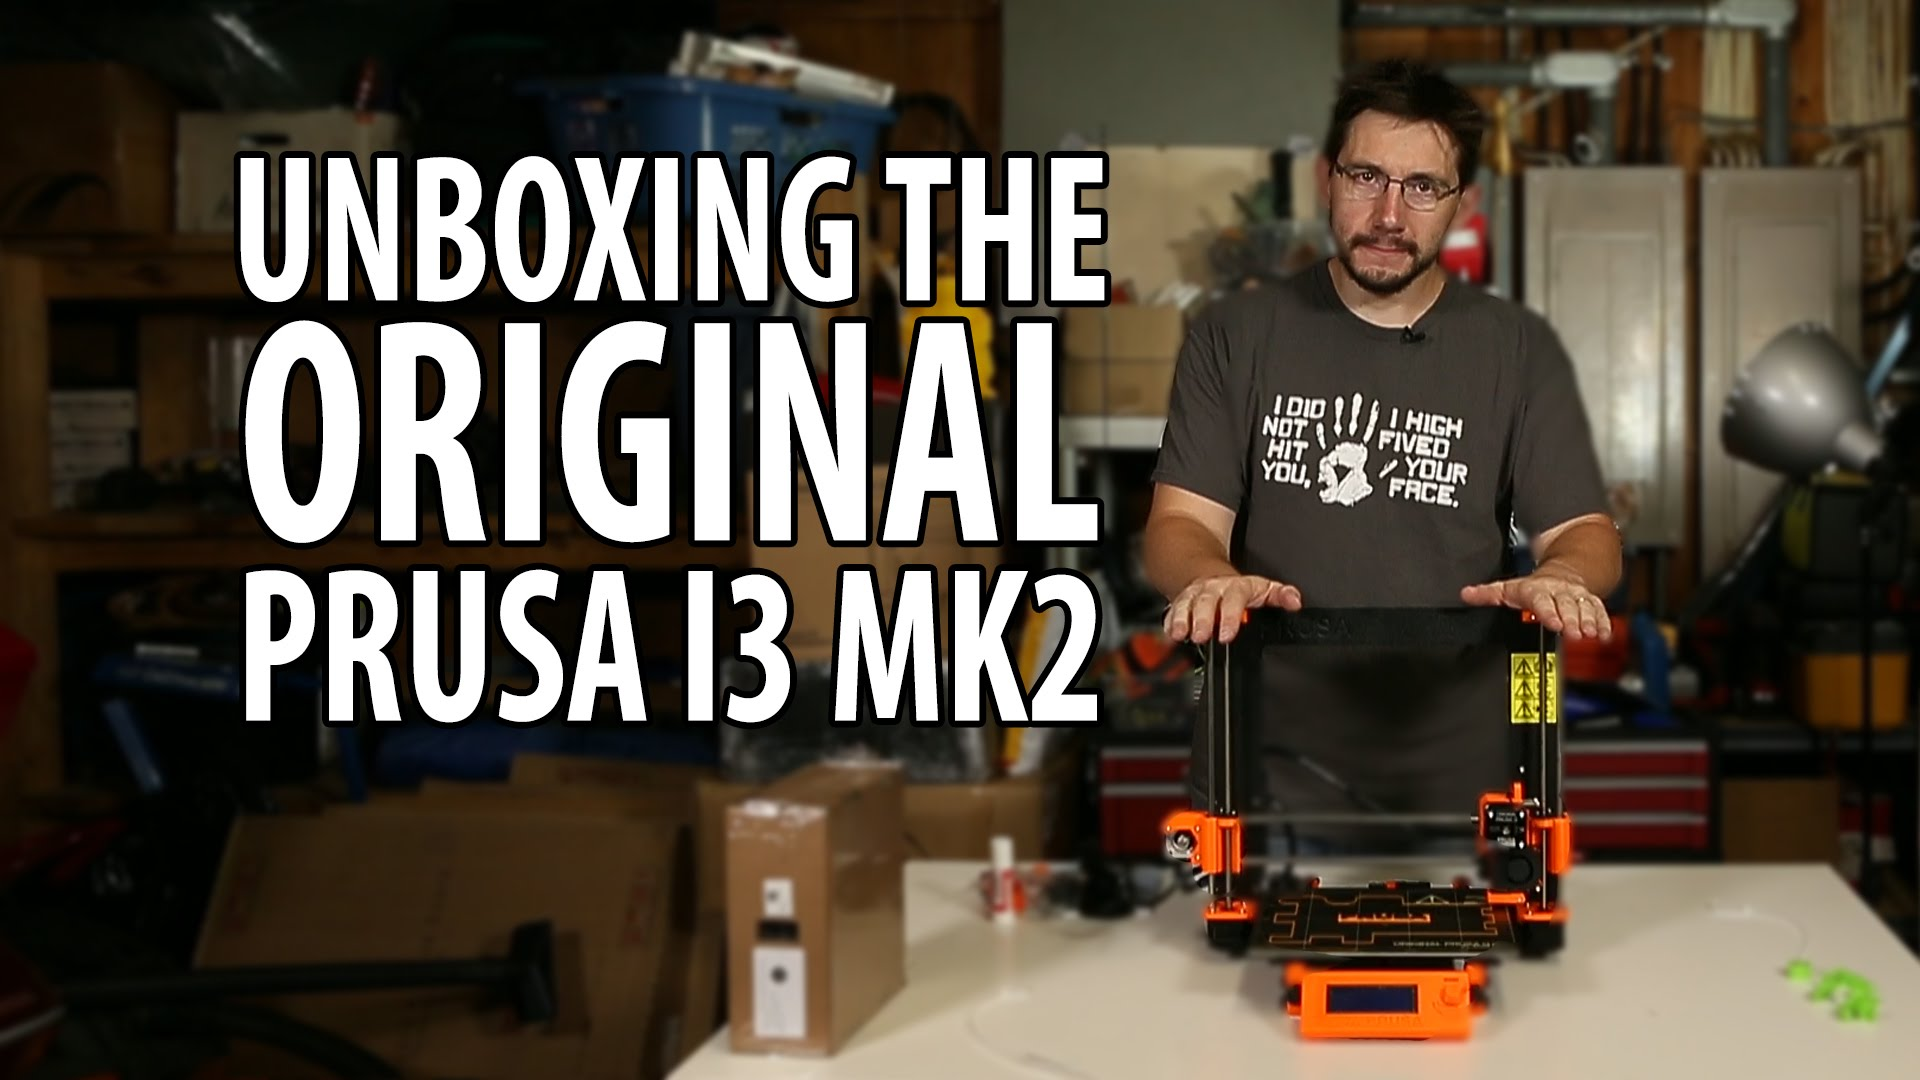 3D Printing: Original Prusa i3 mk2 3D Printer Unboxing and First Use